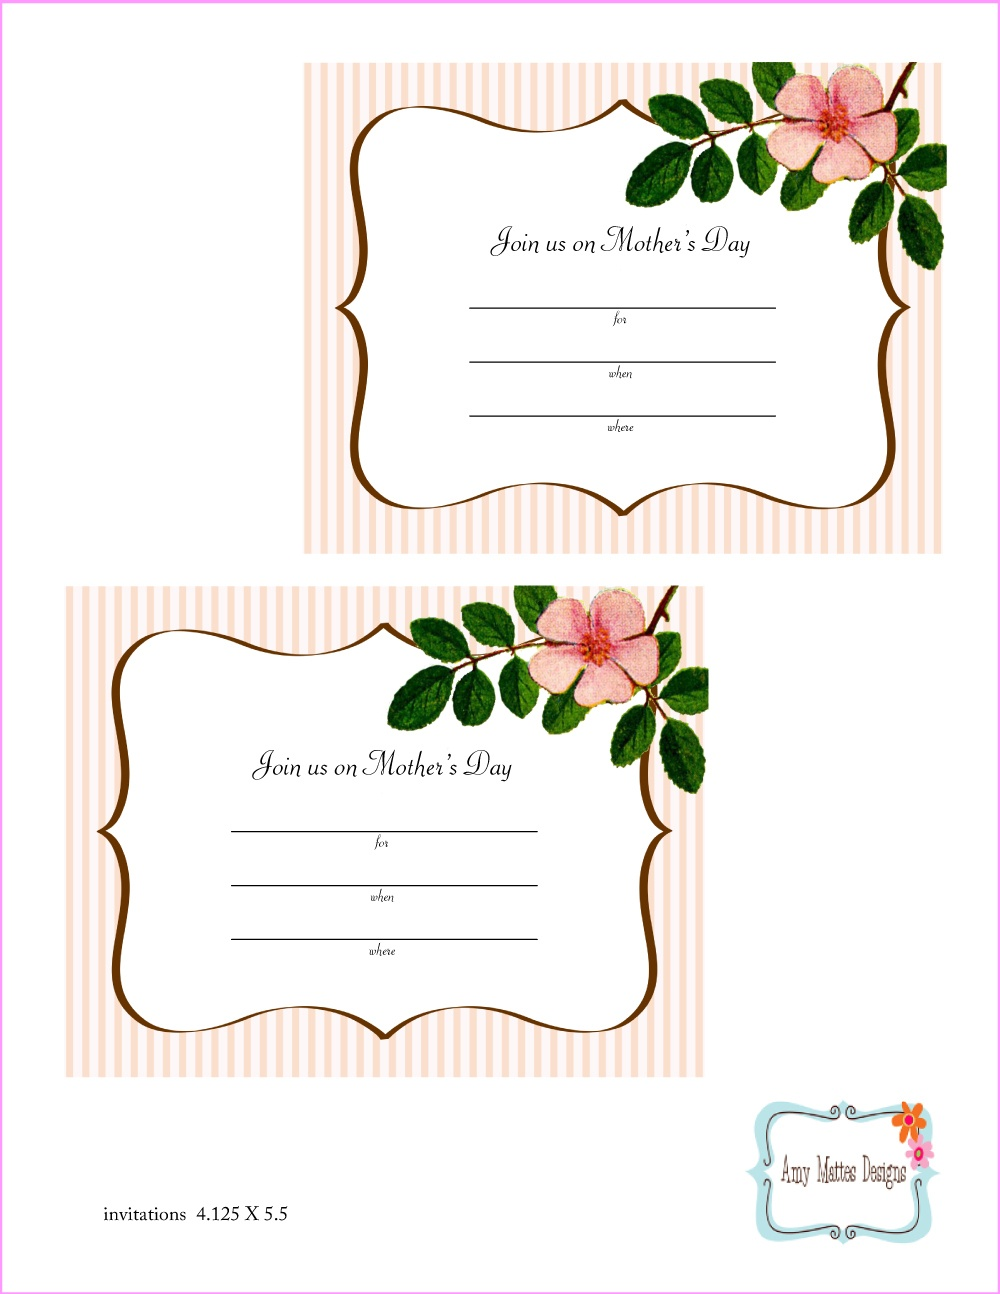 Free Mother's Day Printables From Amy Mattes Designs | Catch My Party - Free Mother's Day Printables